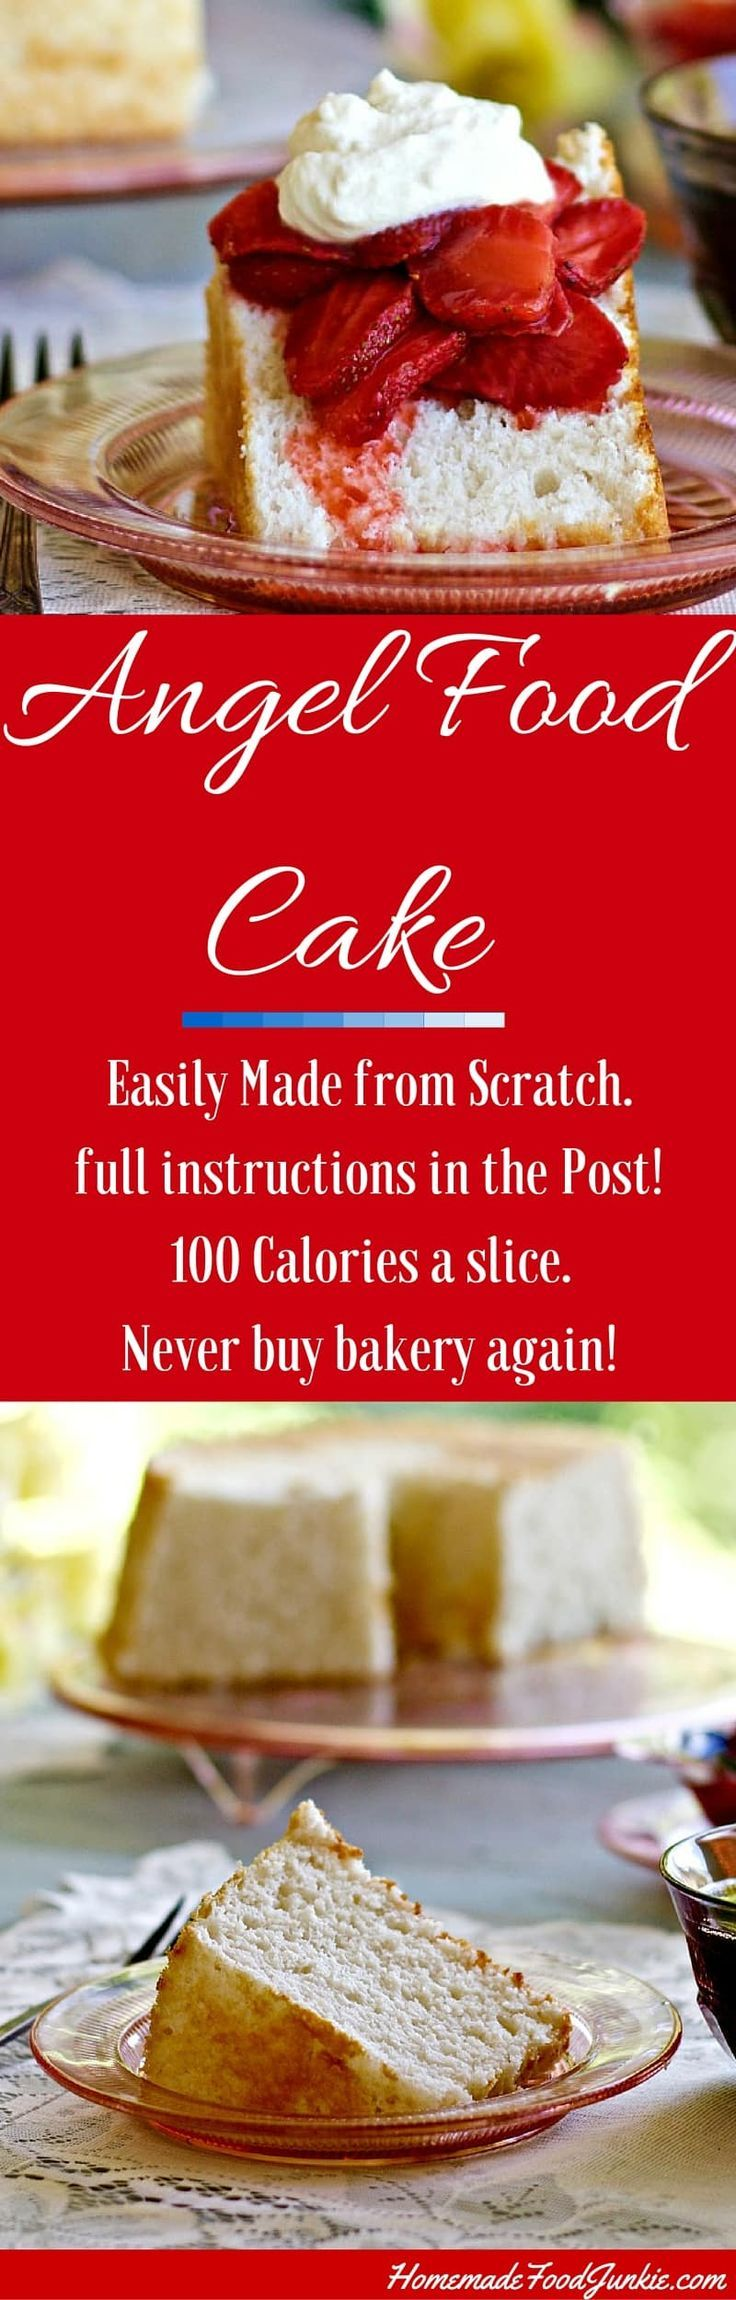 Angel Food Cake is Low-Fat and Dairy-Free! A tender moist cake that is delicious plain!